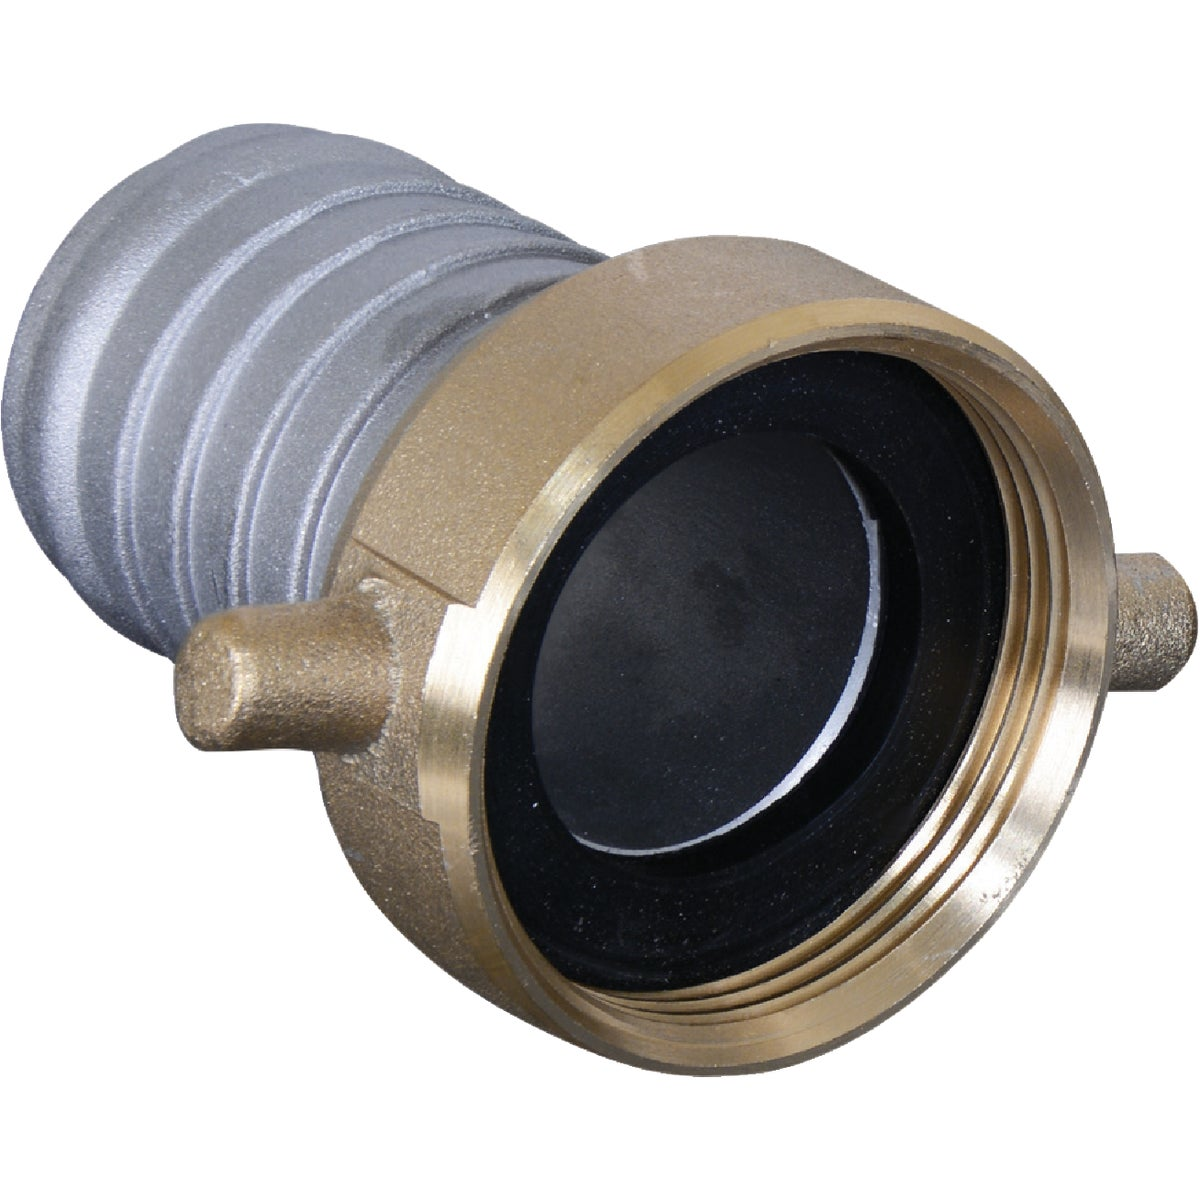 "2"" F PIN LUG COUPLING - 43076000 by Apache Hose Belting"